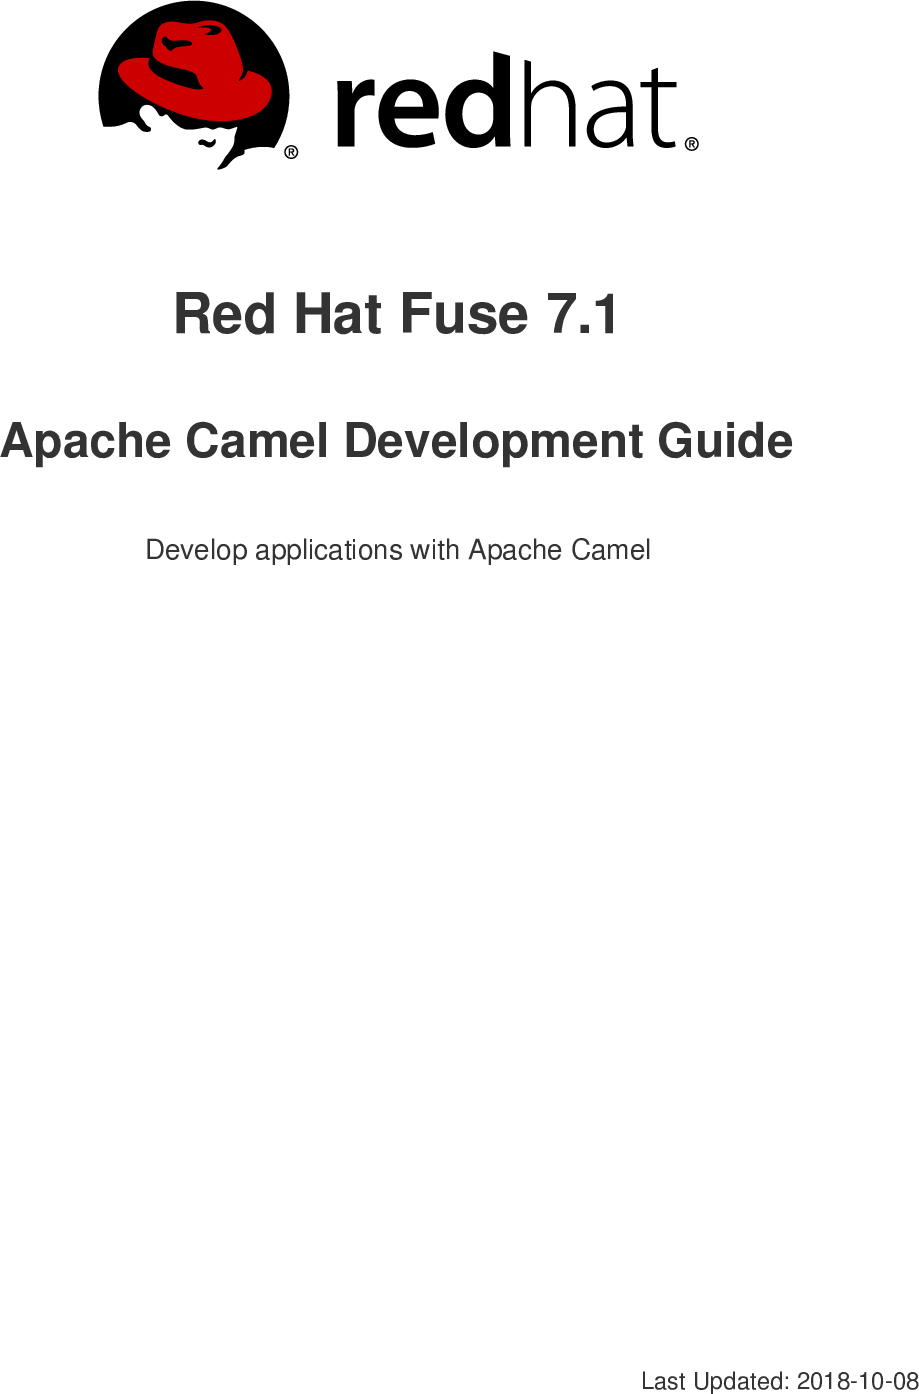 Red Hat Fuse 7 1 Apache Camel Development Guide en US